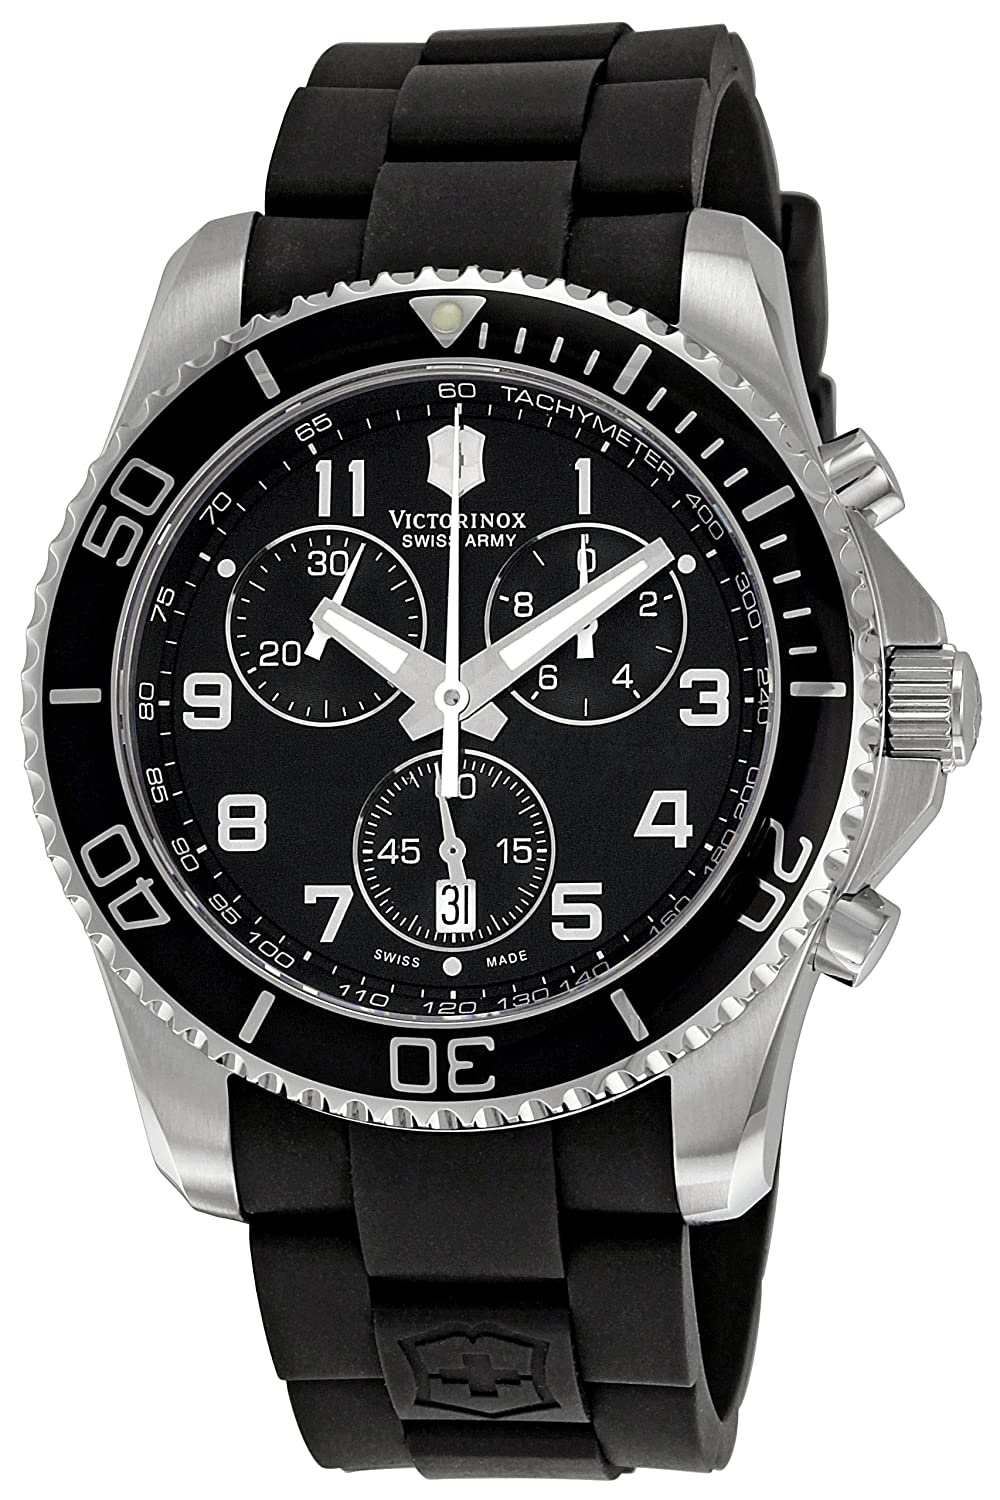 Victorinox Men's Watch B003ZJW7FY